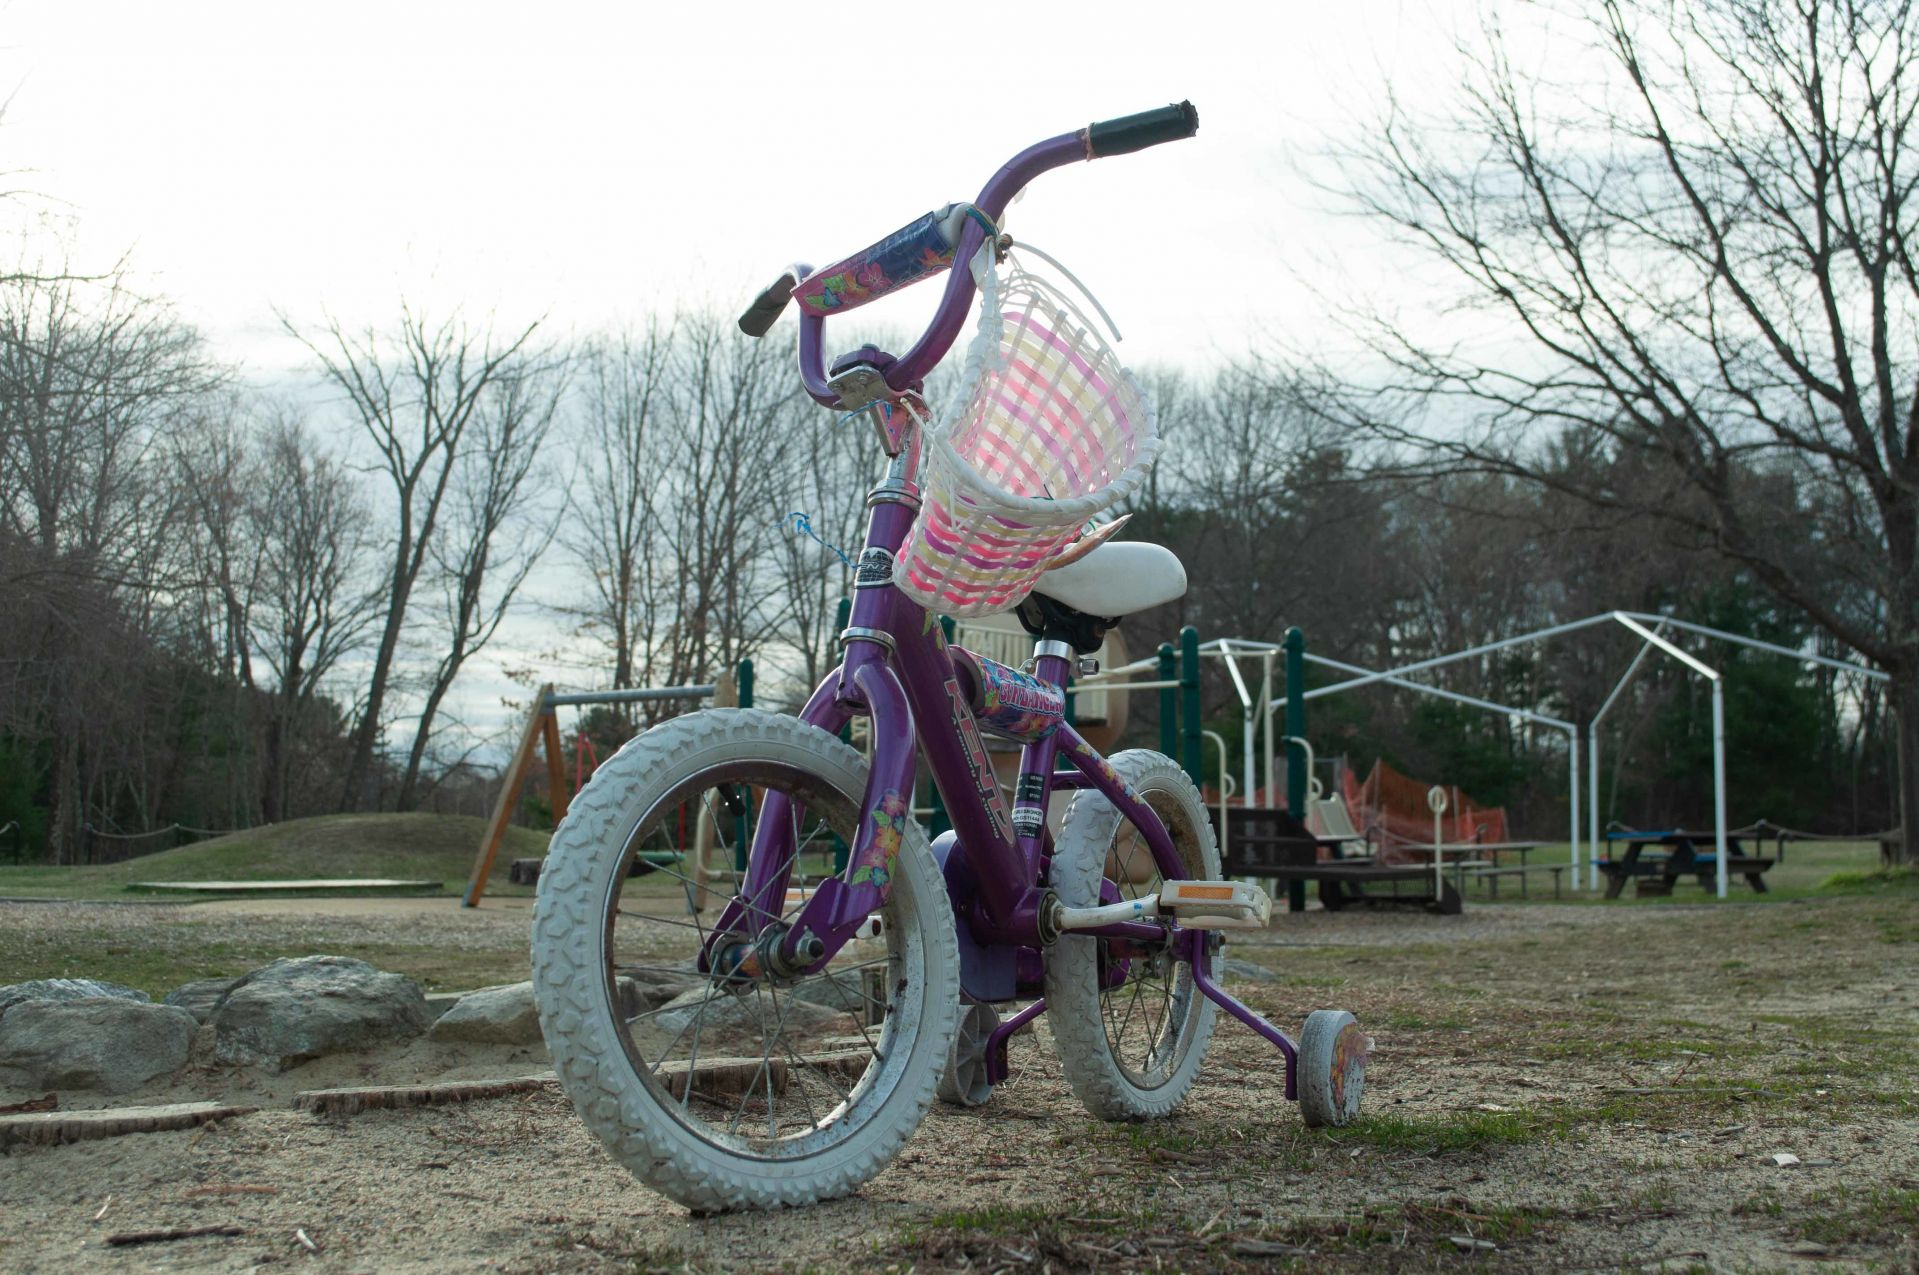 A child's bike sits near an empty playground on April 21, 2020. (Photograph by Nick Charde '22)